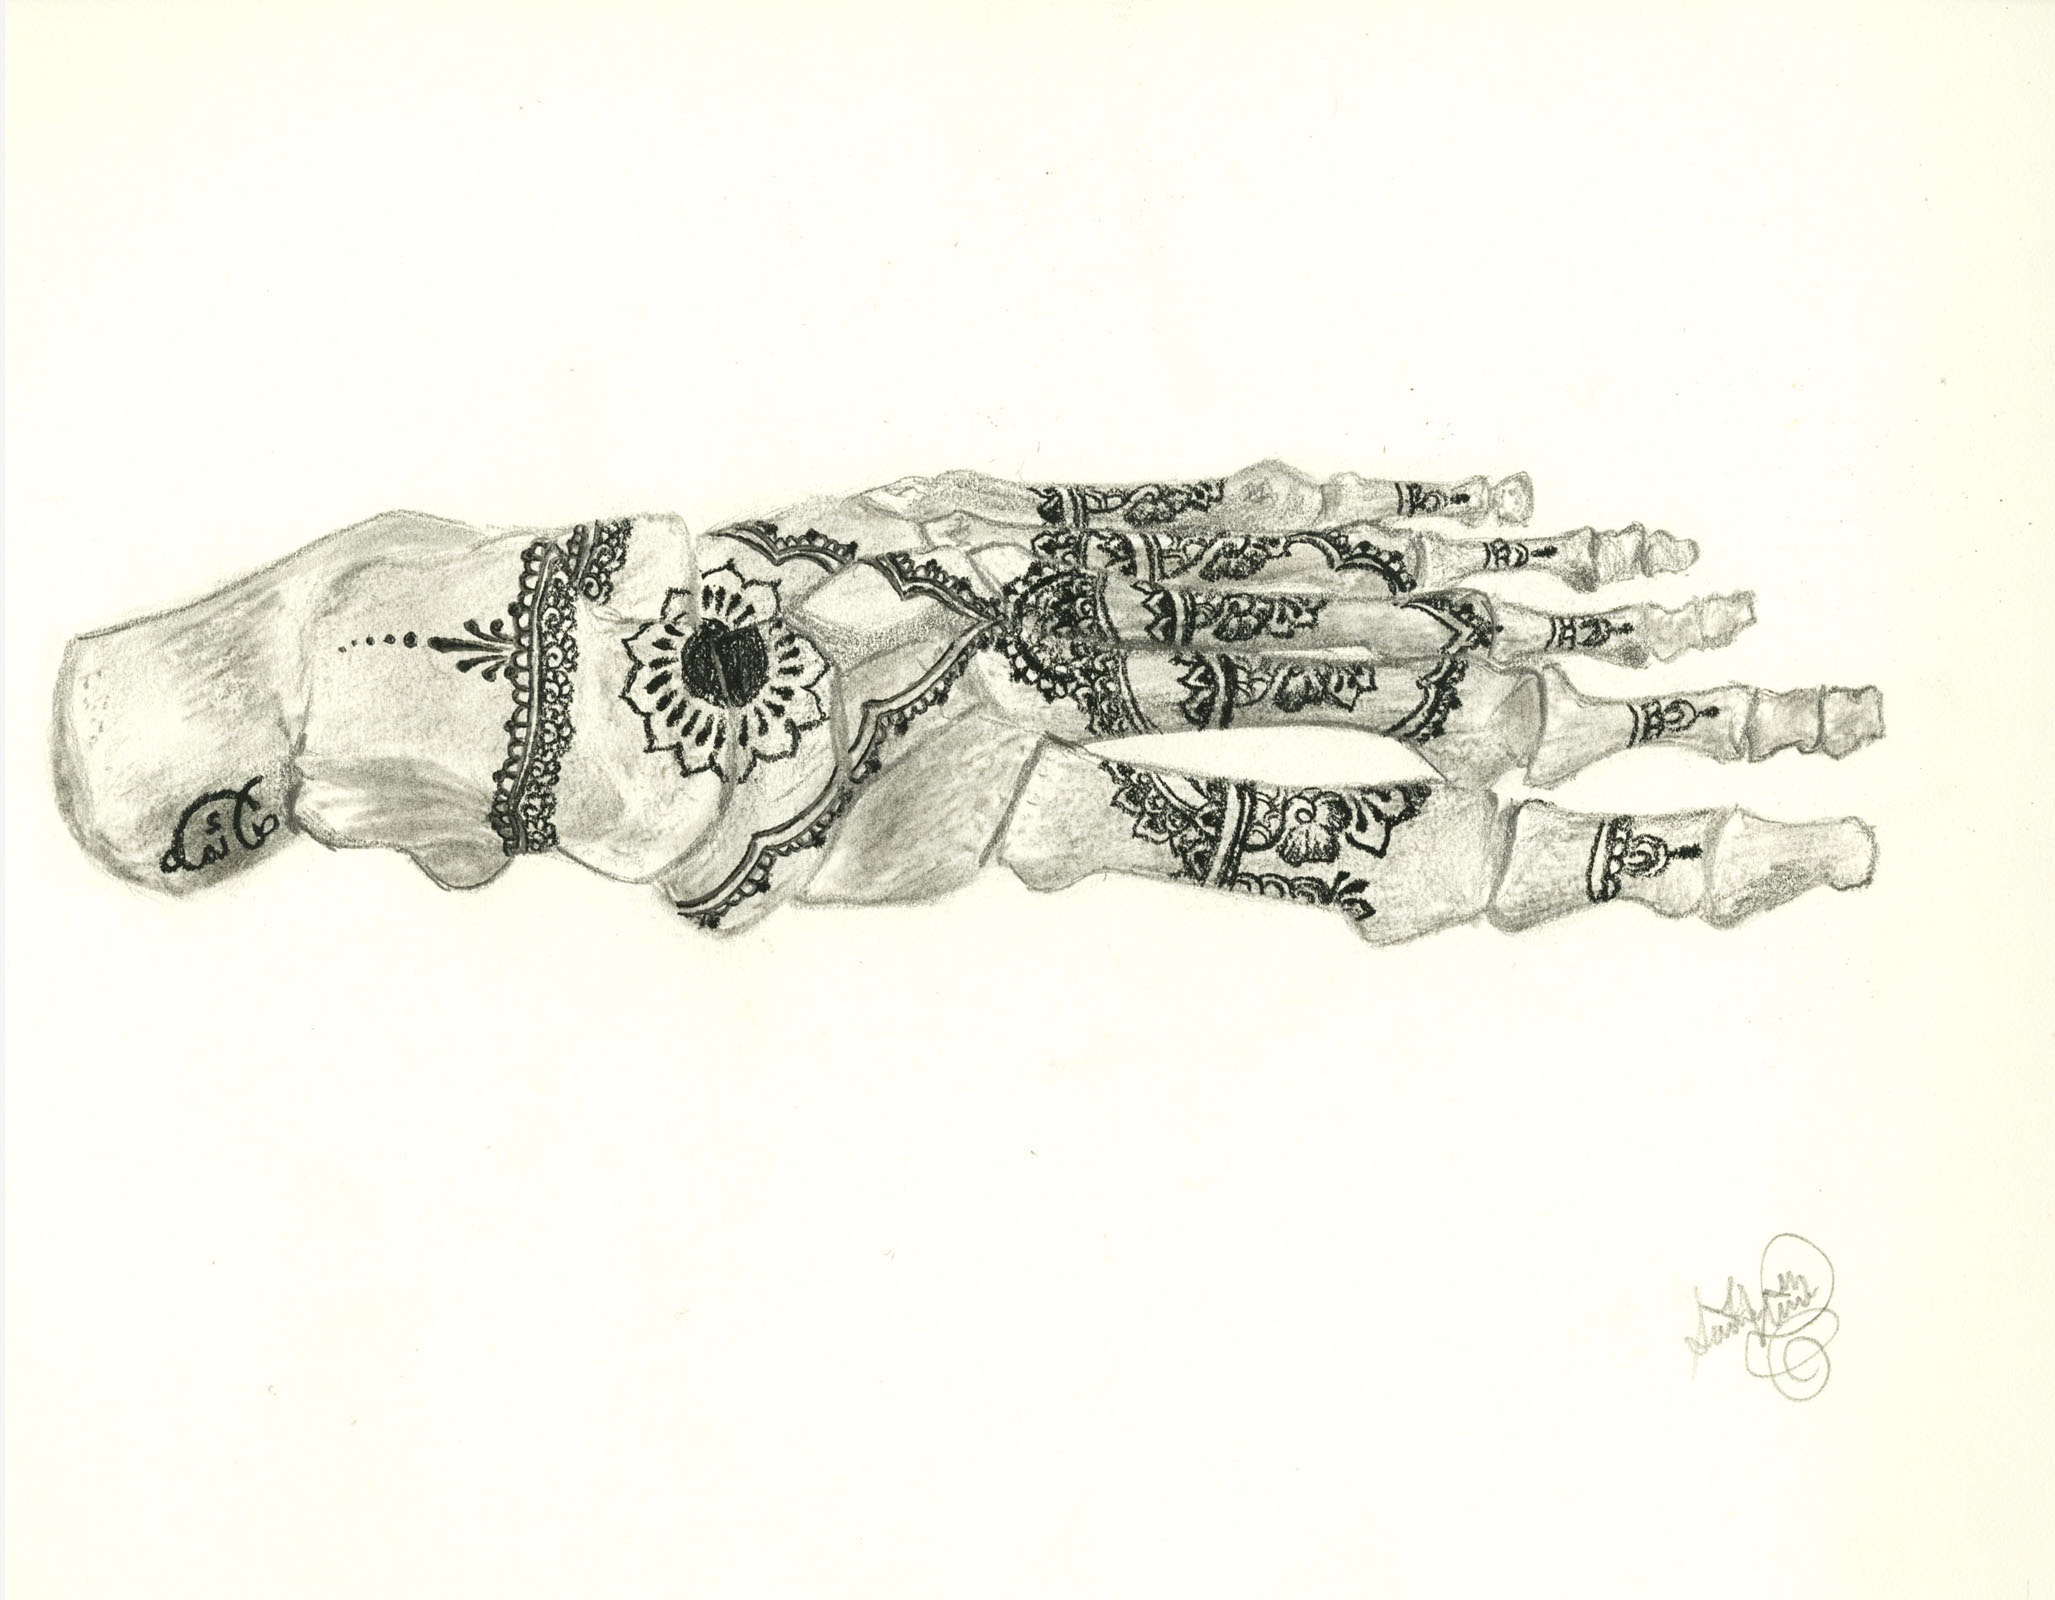 Saima Usmani, Skeleton foot